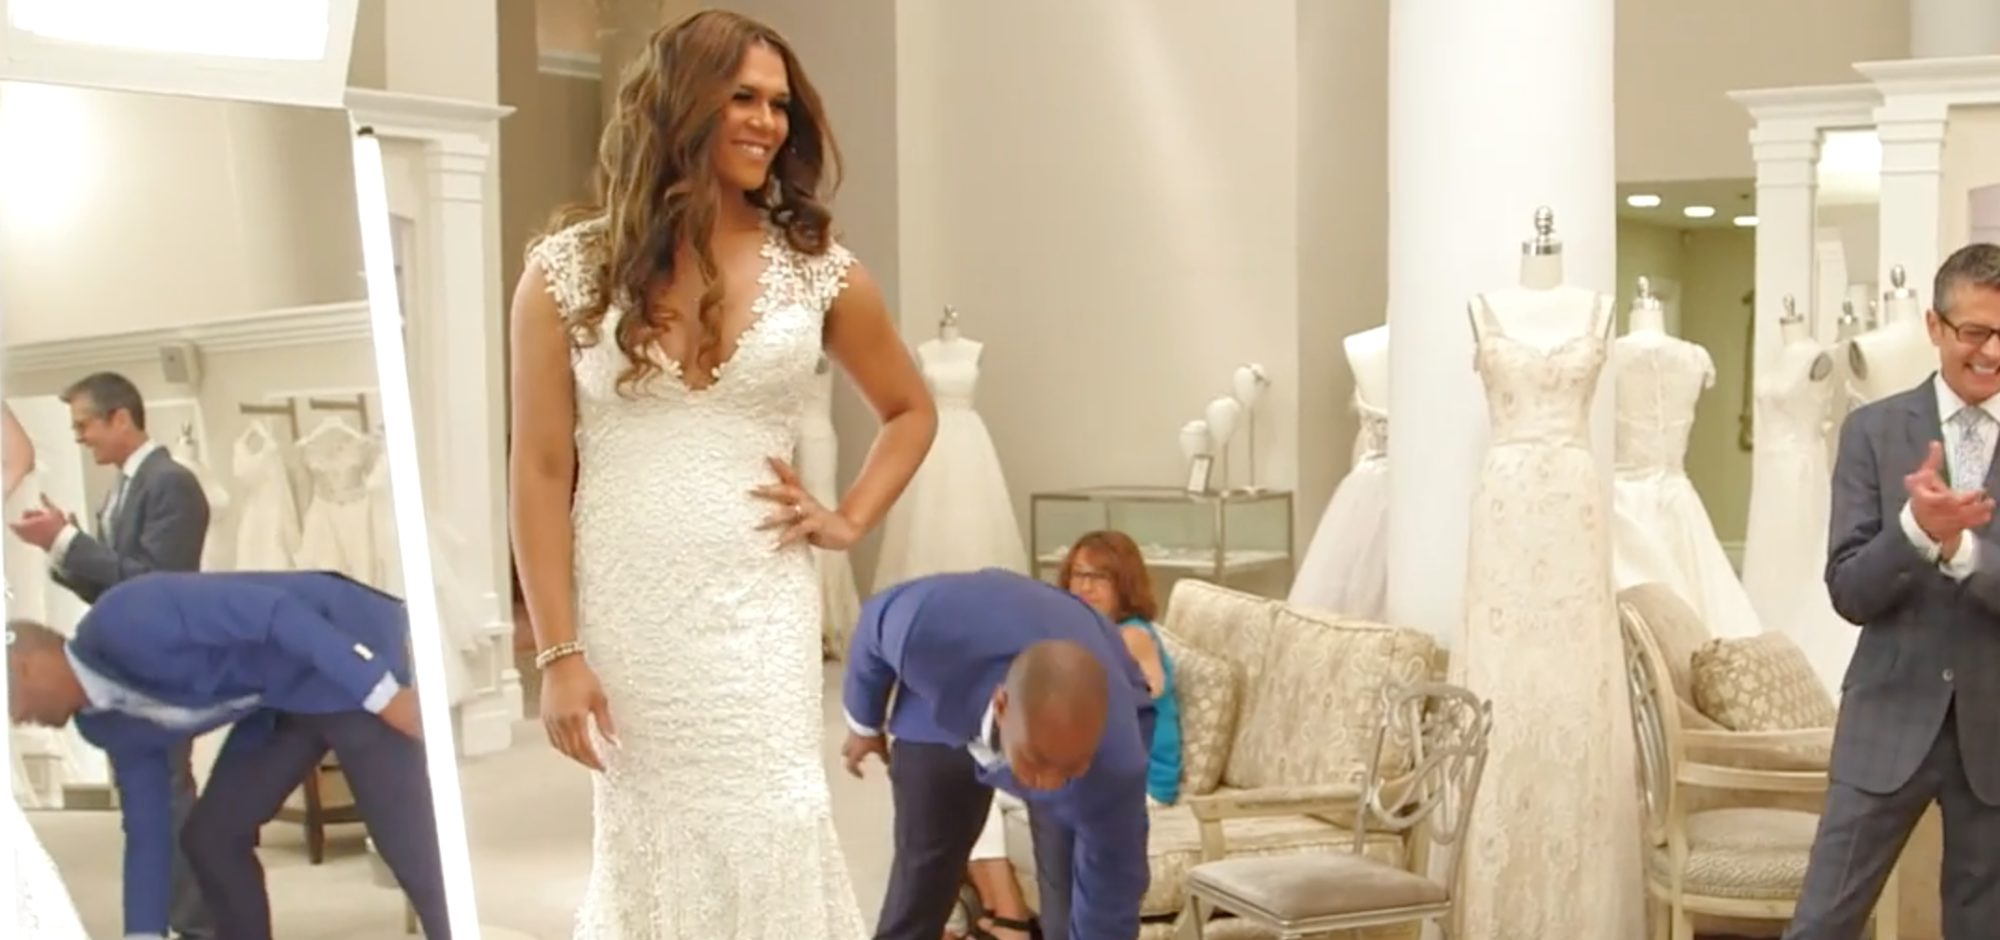 Meet the Empowering Trans Bride About to Appear on 'Say Yes to the Dress' (Exclusive)